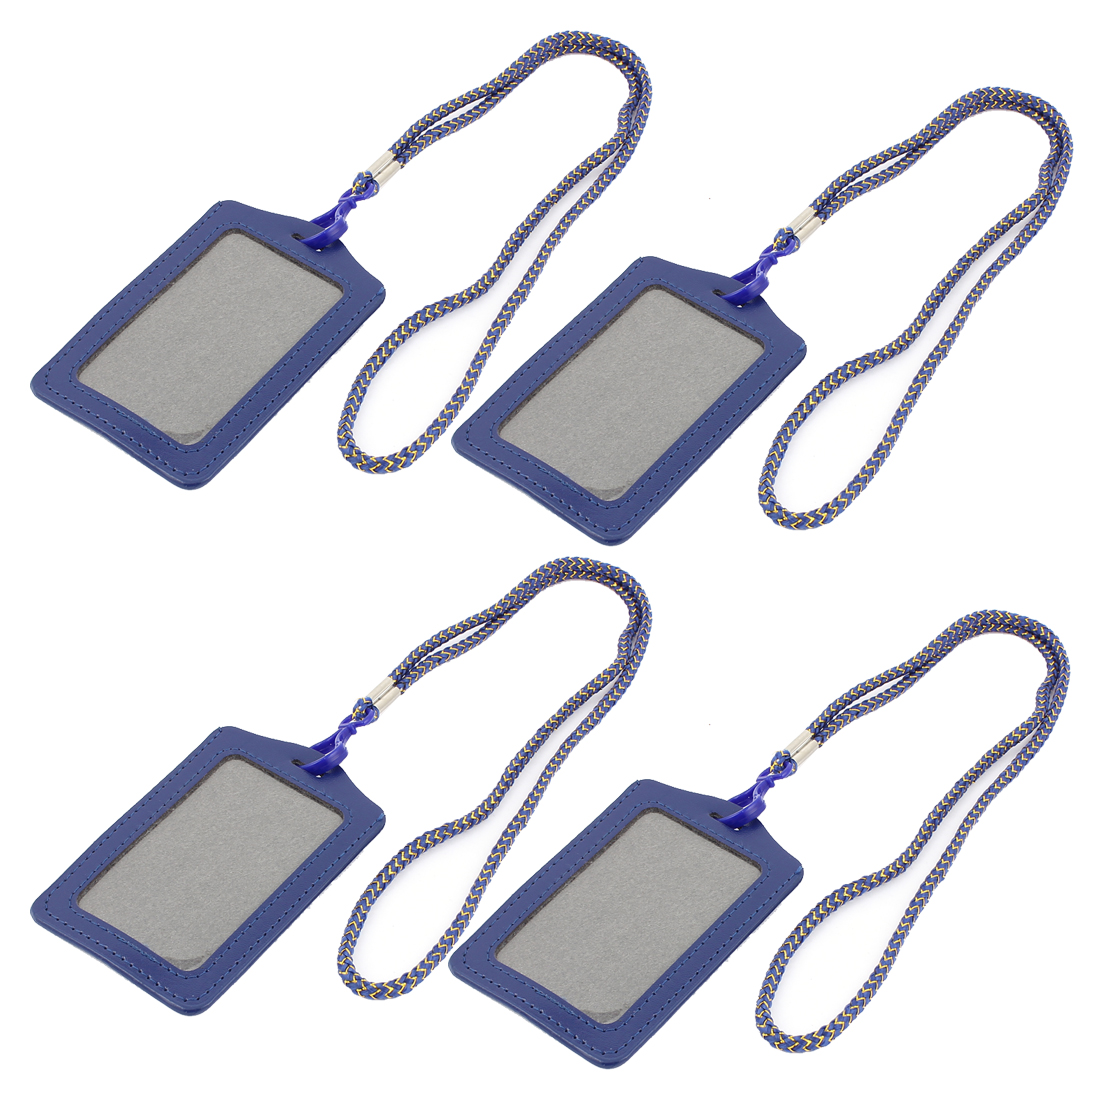 Company Office Nylon Neck Strap Vertical Exhibition Name Card ID Badge Holder Carrier Dark Blue 4pcs